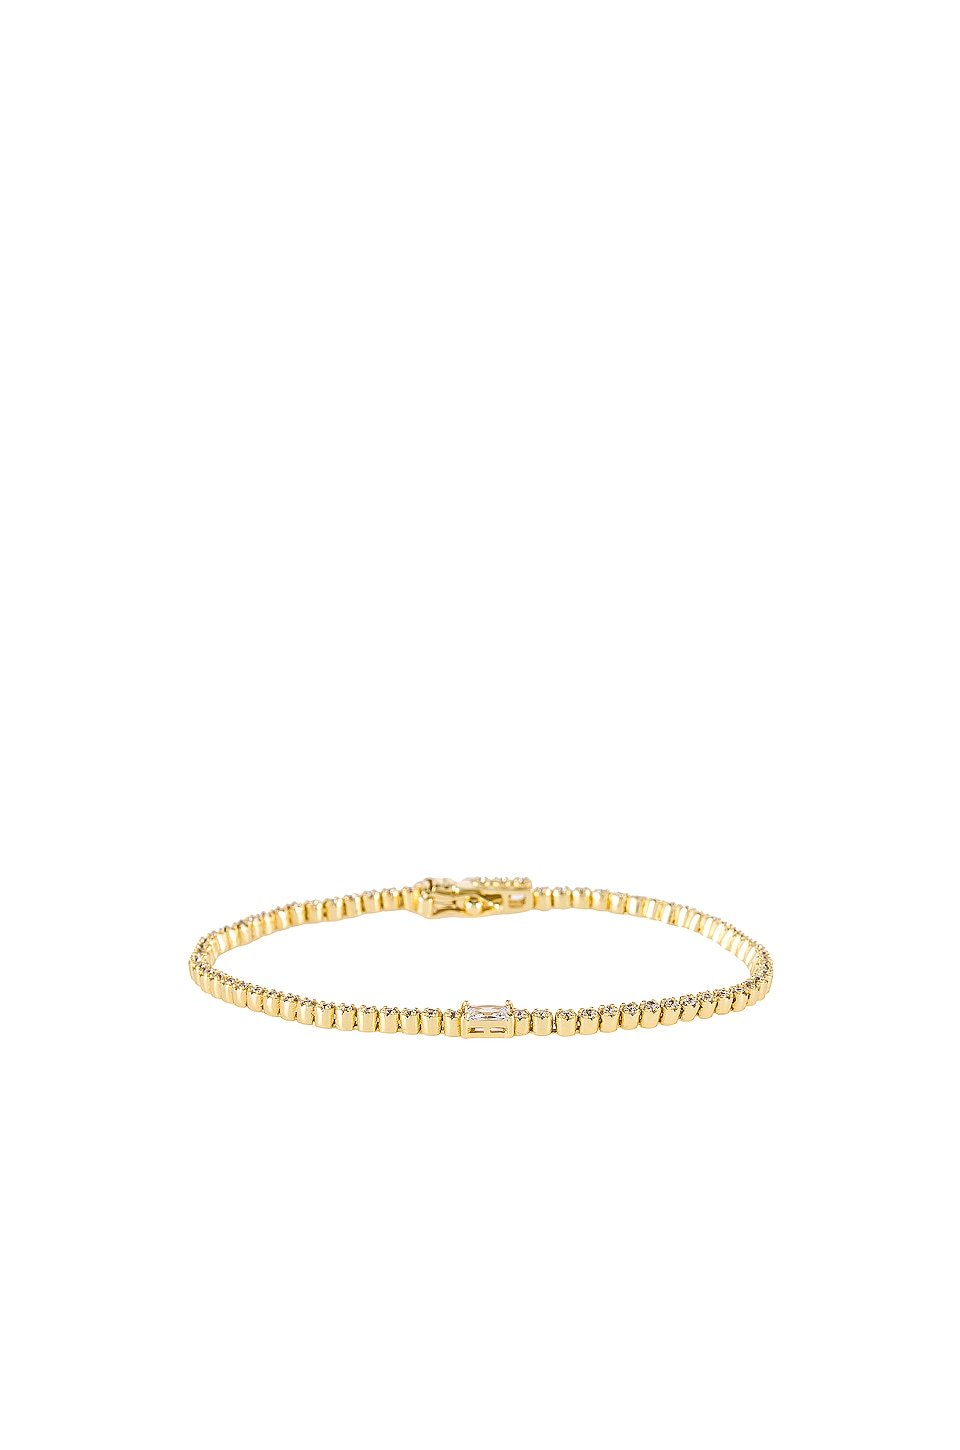 The M Jewelers NY The Colored Stone Tennis Bracelet in White